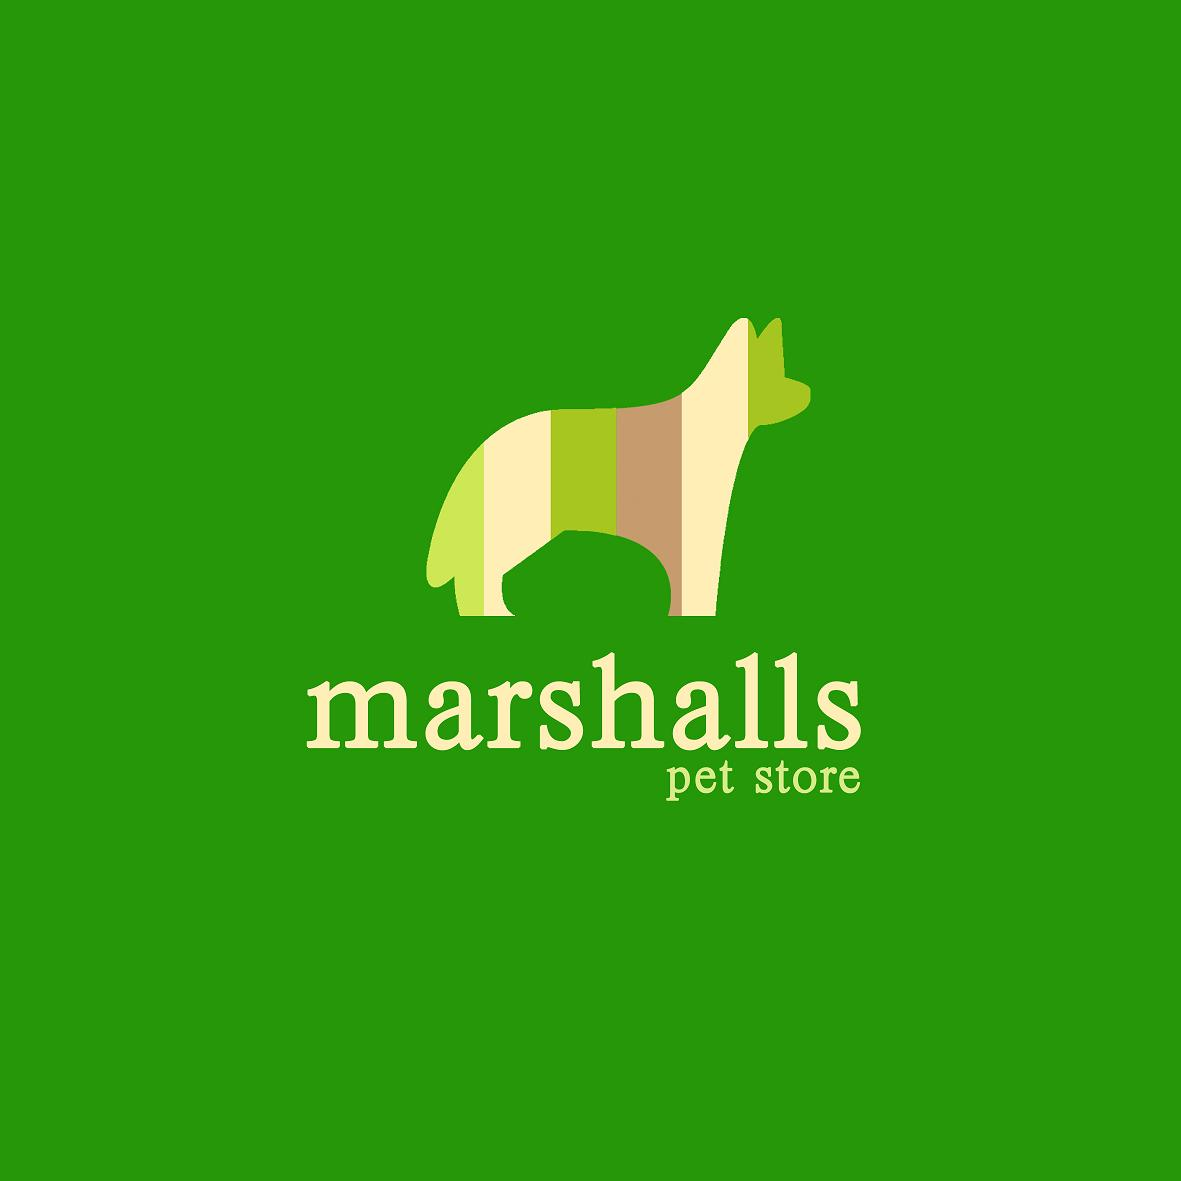 Graphic Design by hellorex for Logo for Marshalls Pet Store - Design #4998